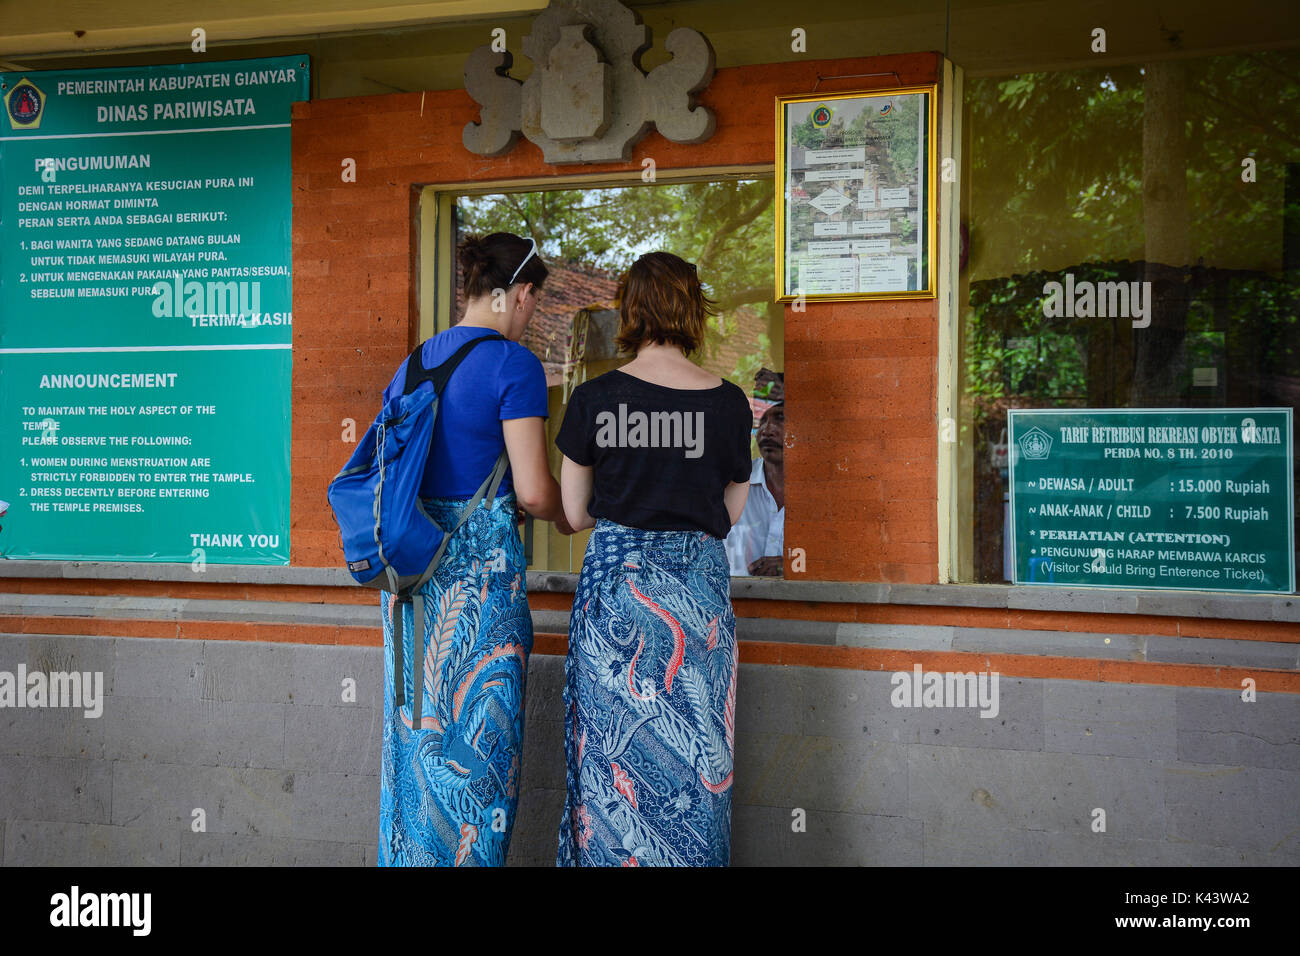 Theme Park Ticket Stock Photos Images Alamy Garden By The Bay Singapore Dewasa Tiket People Waiting At Booth Of Uluwatu